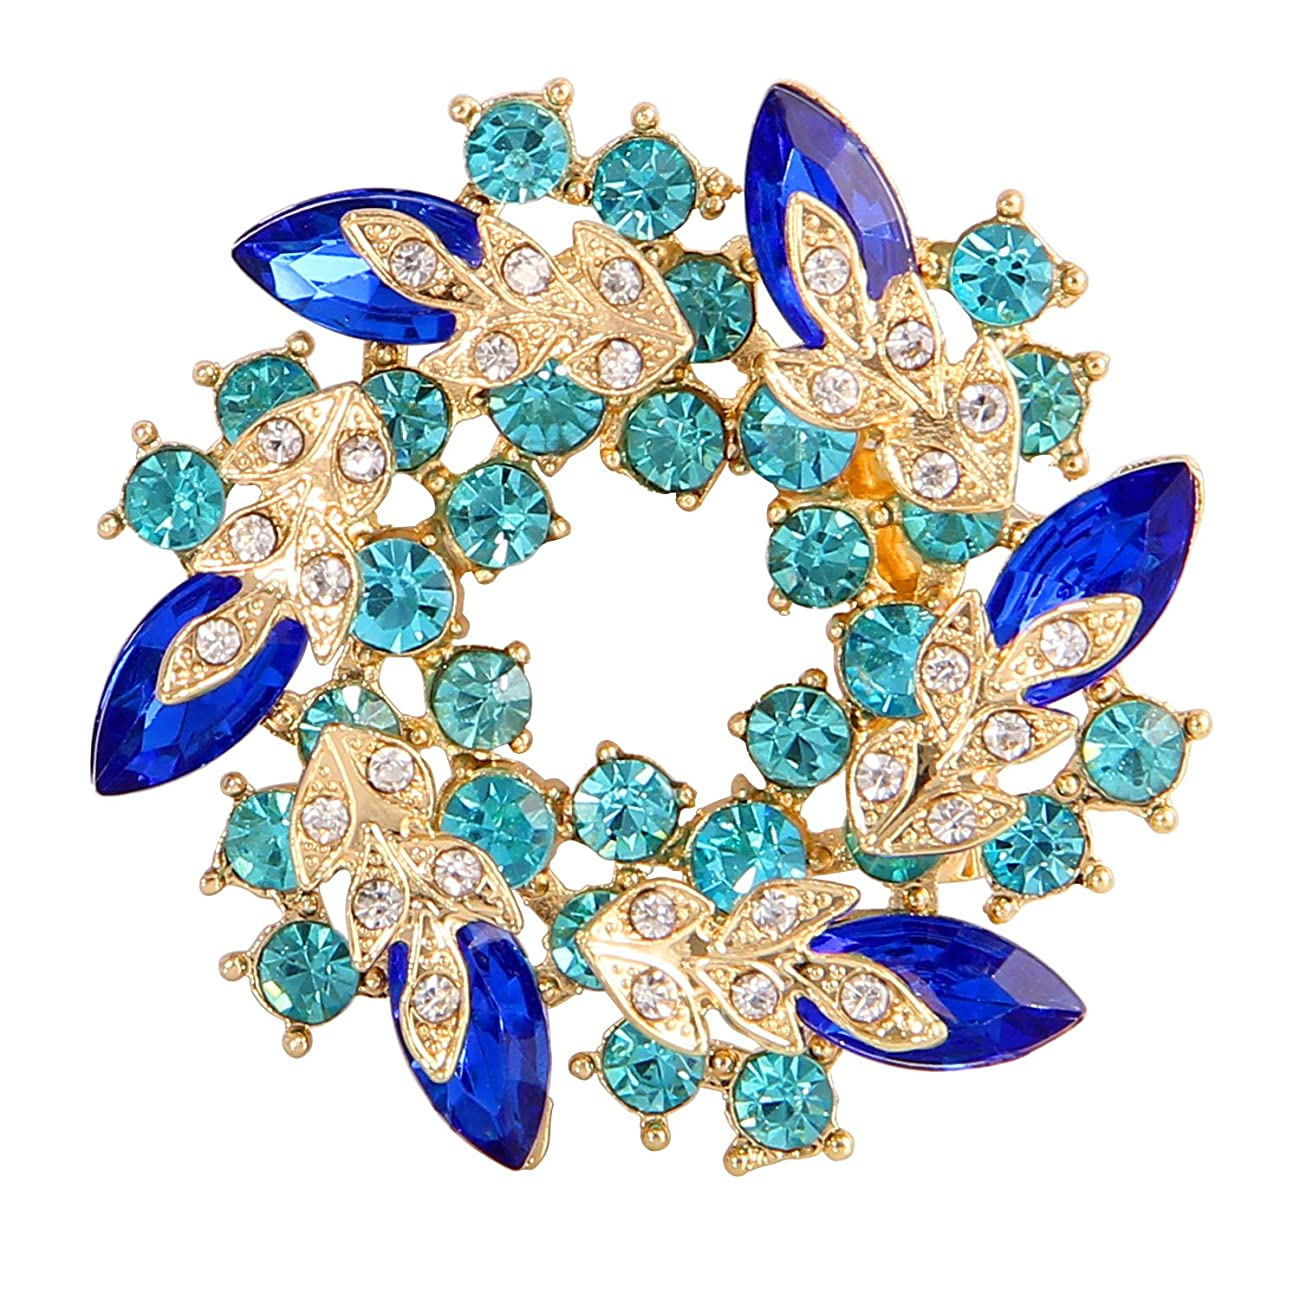 Valdler Women 's Brooch Pin With Fashion Jewelry Fancy Vintage Rhinestone Bling Crystal Bauhinia Flower 0